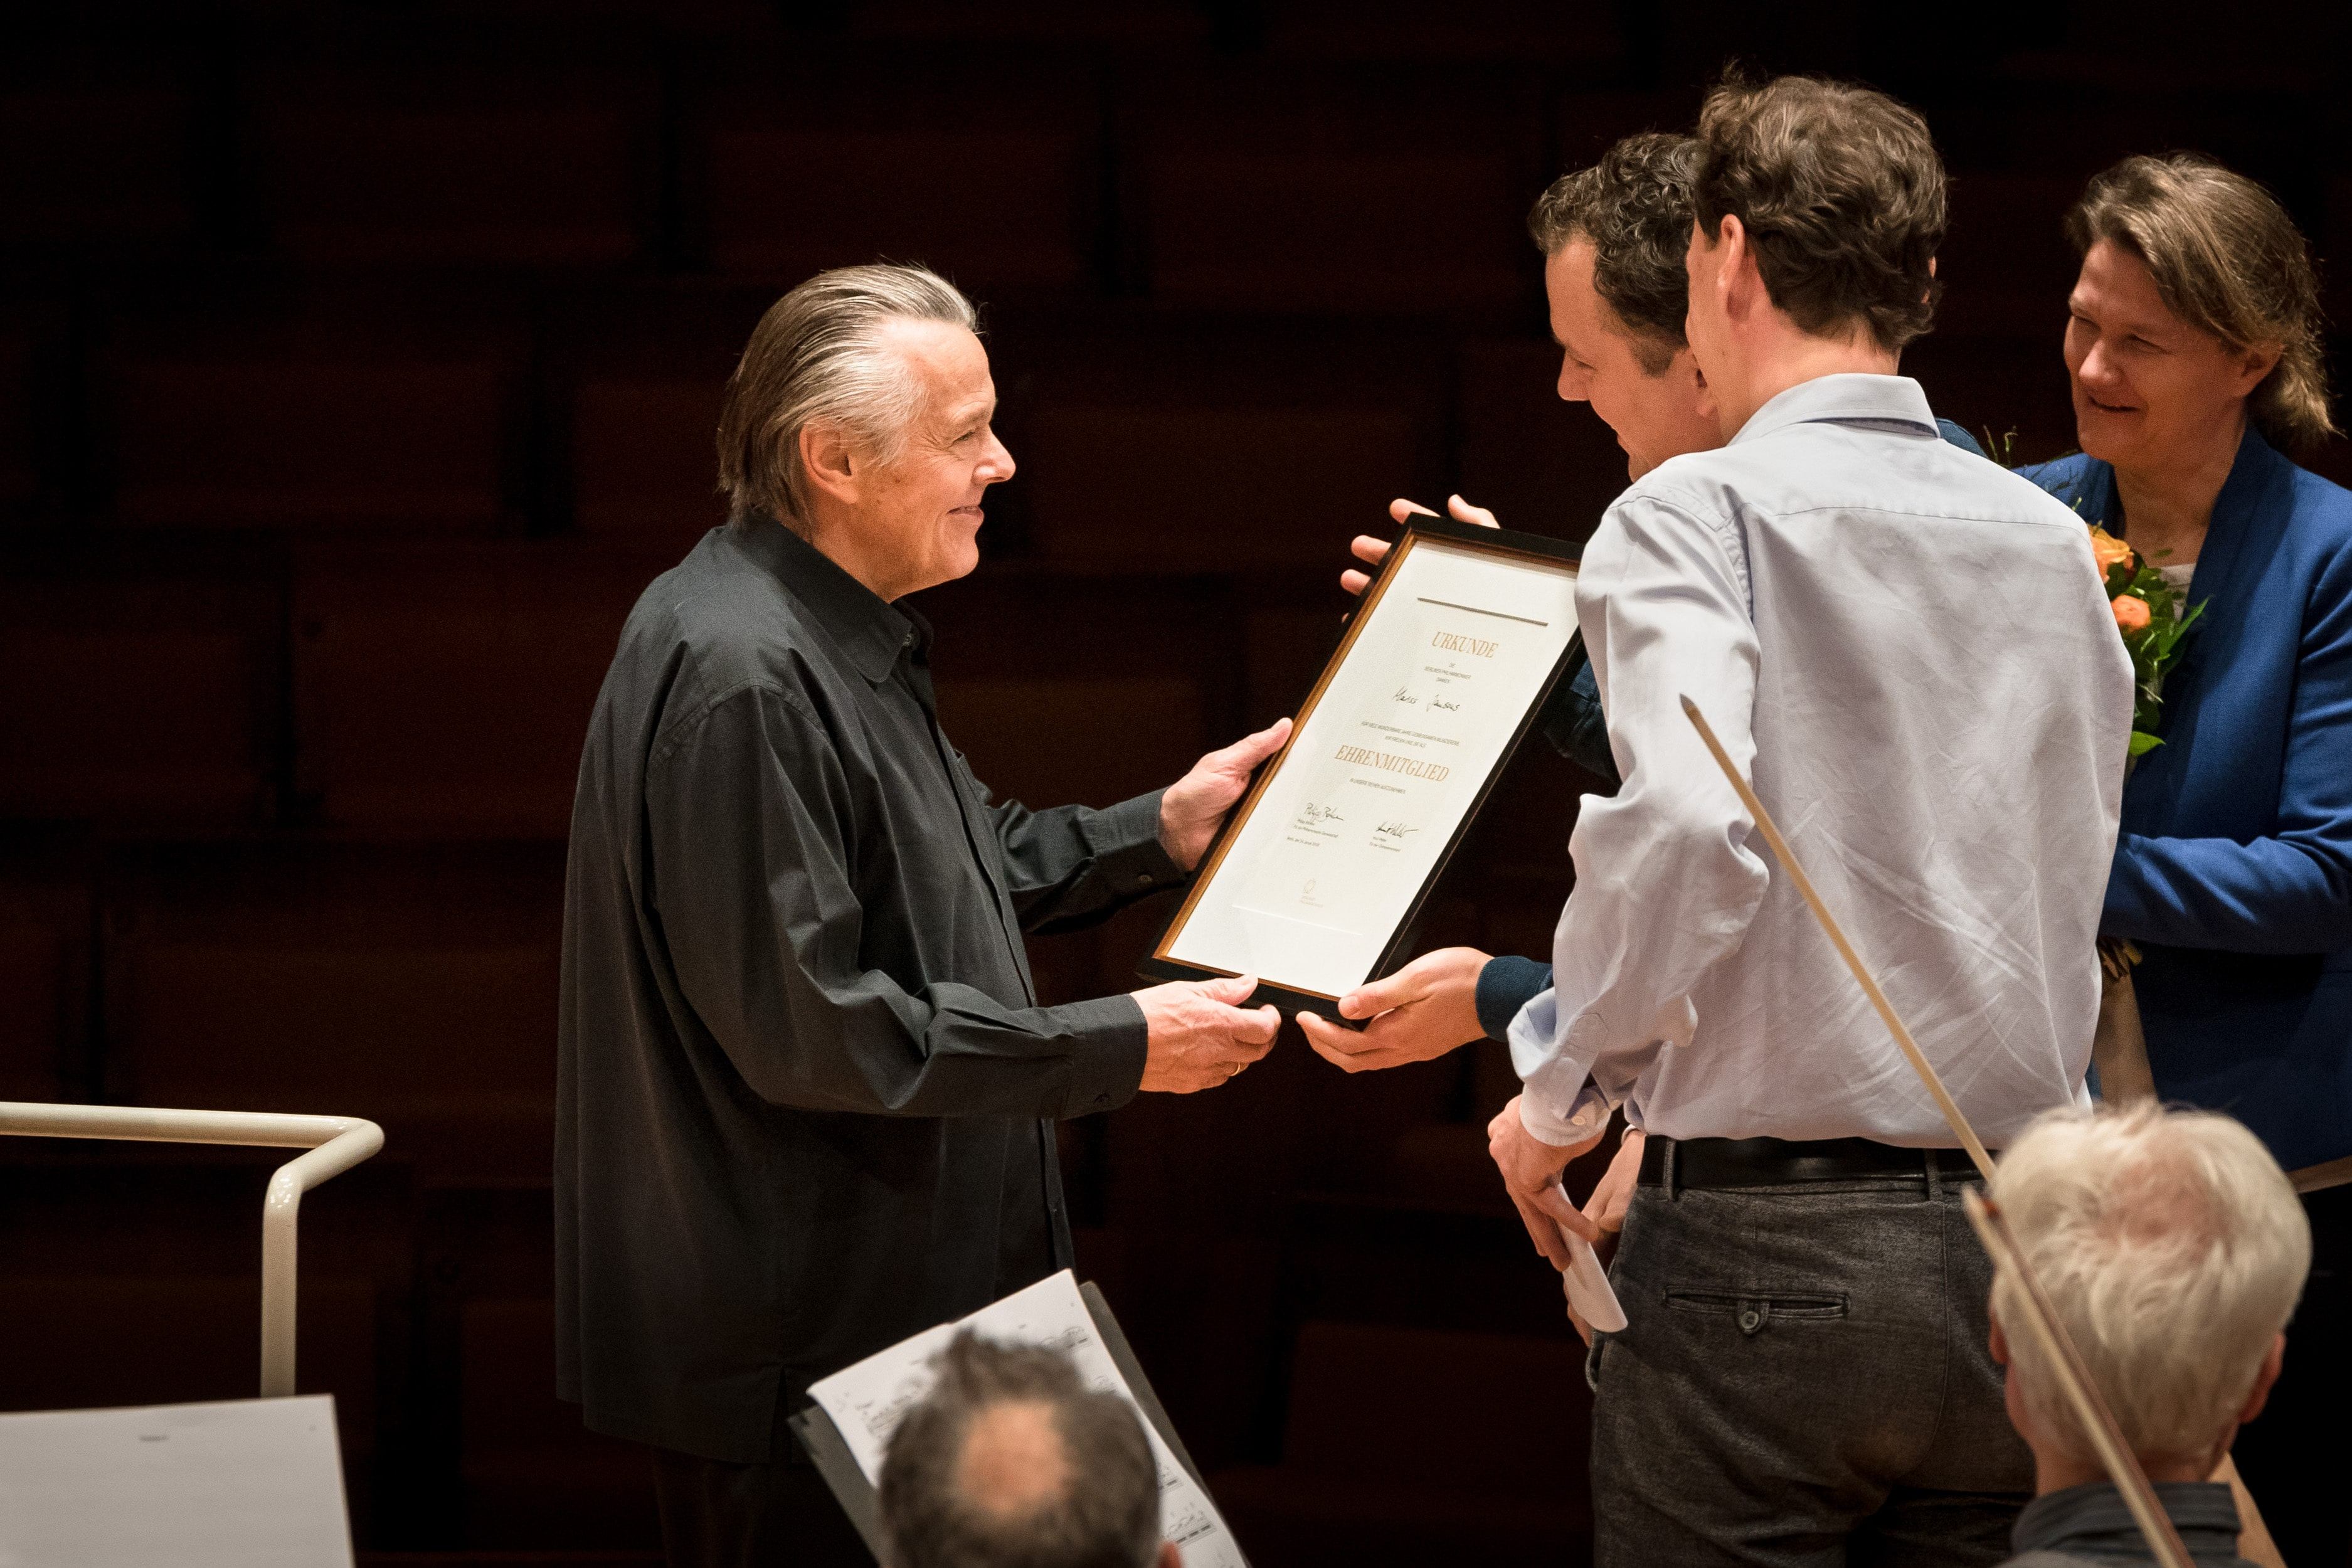 Mariss Jansons is made a member of the Berlin Philharmonic